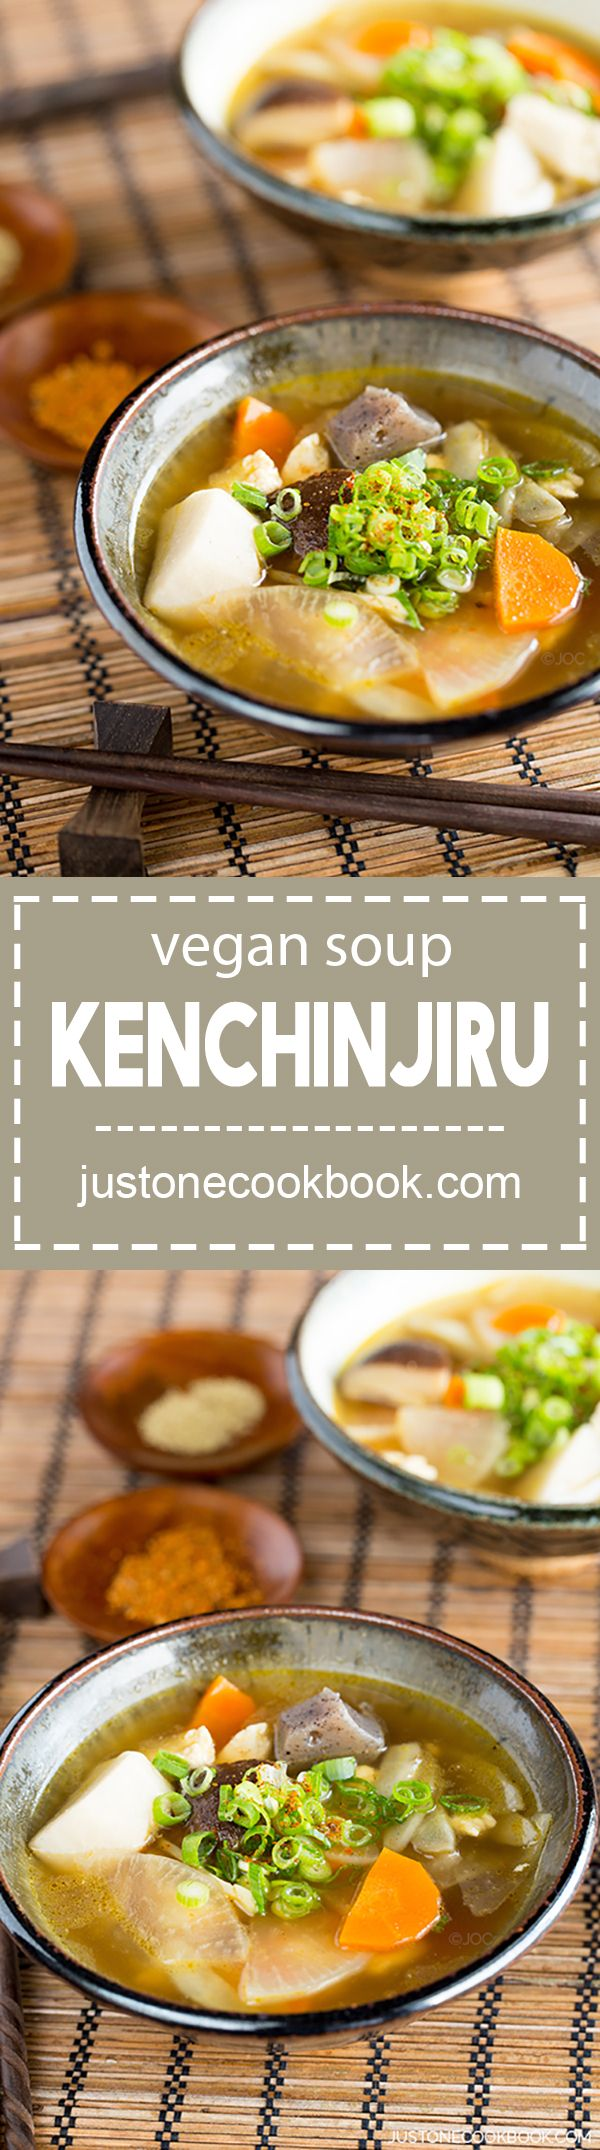 Vegetable Soup - Kenchinjiru (けんちん汁) - Vegan | Easy Japanese Recipes at JustOneCookbook.com